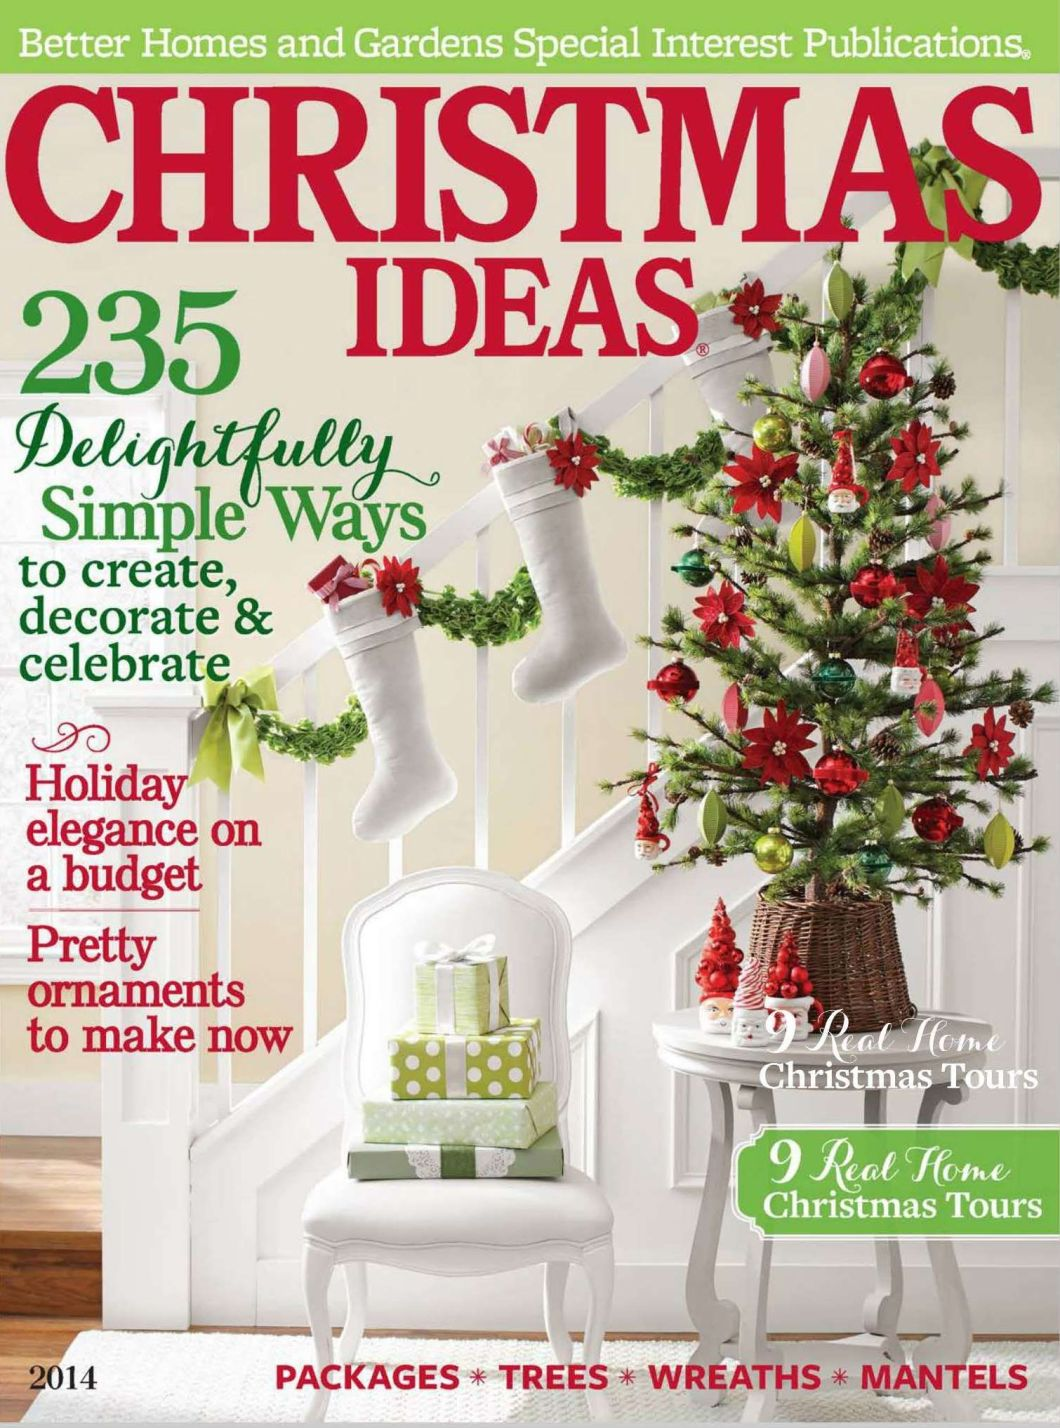 Better homes and gardens christmas decorating ideas